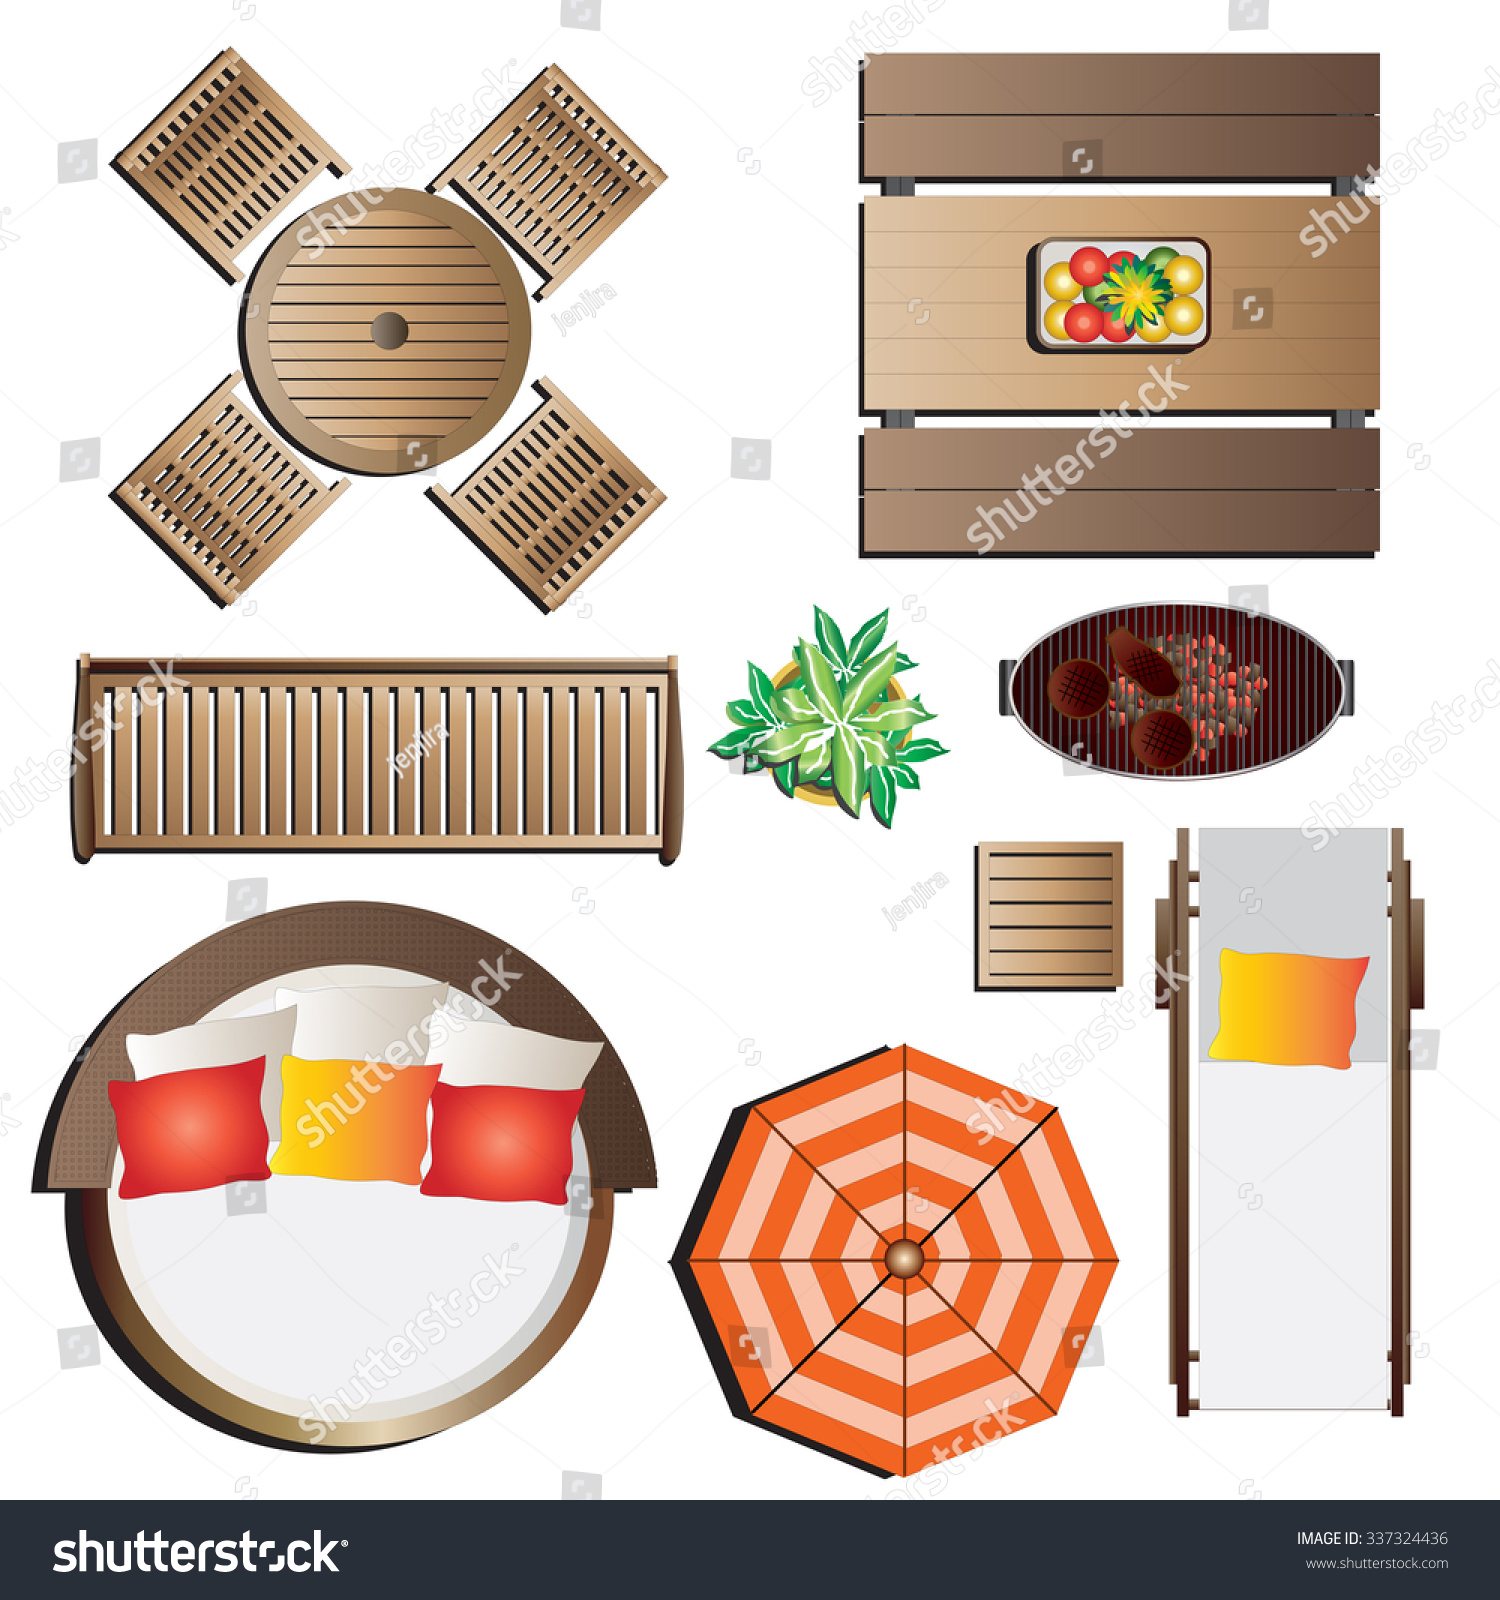 garden furniture top view psd 0 stock vector outdoor furniture top view set for - Garden Furniture Top View Psd